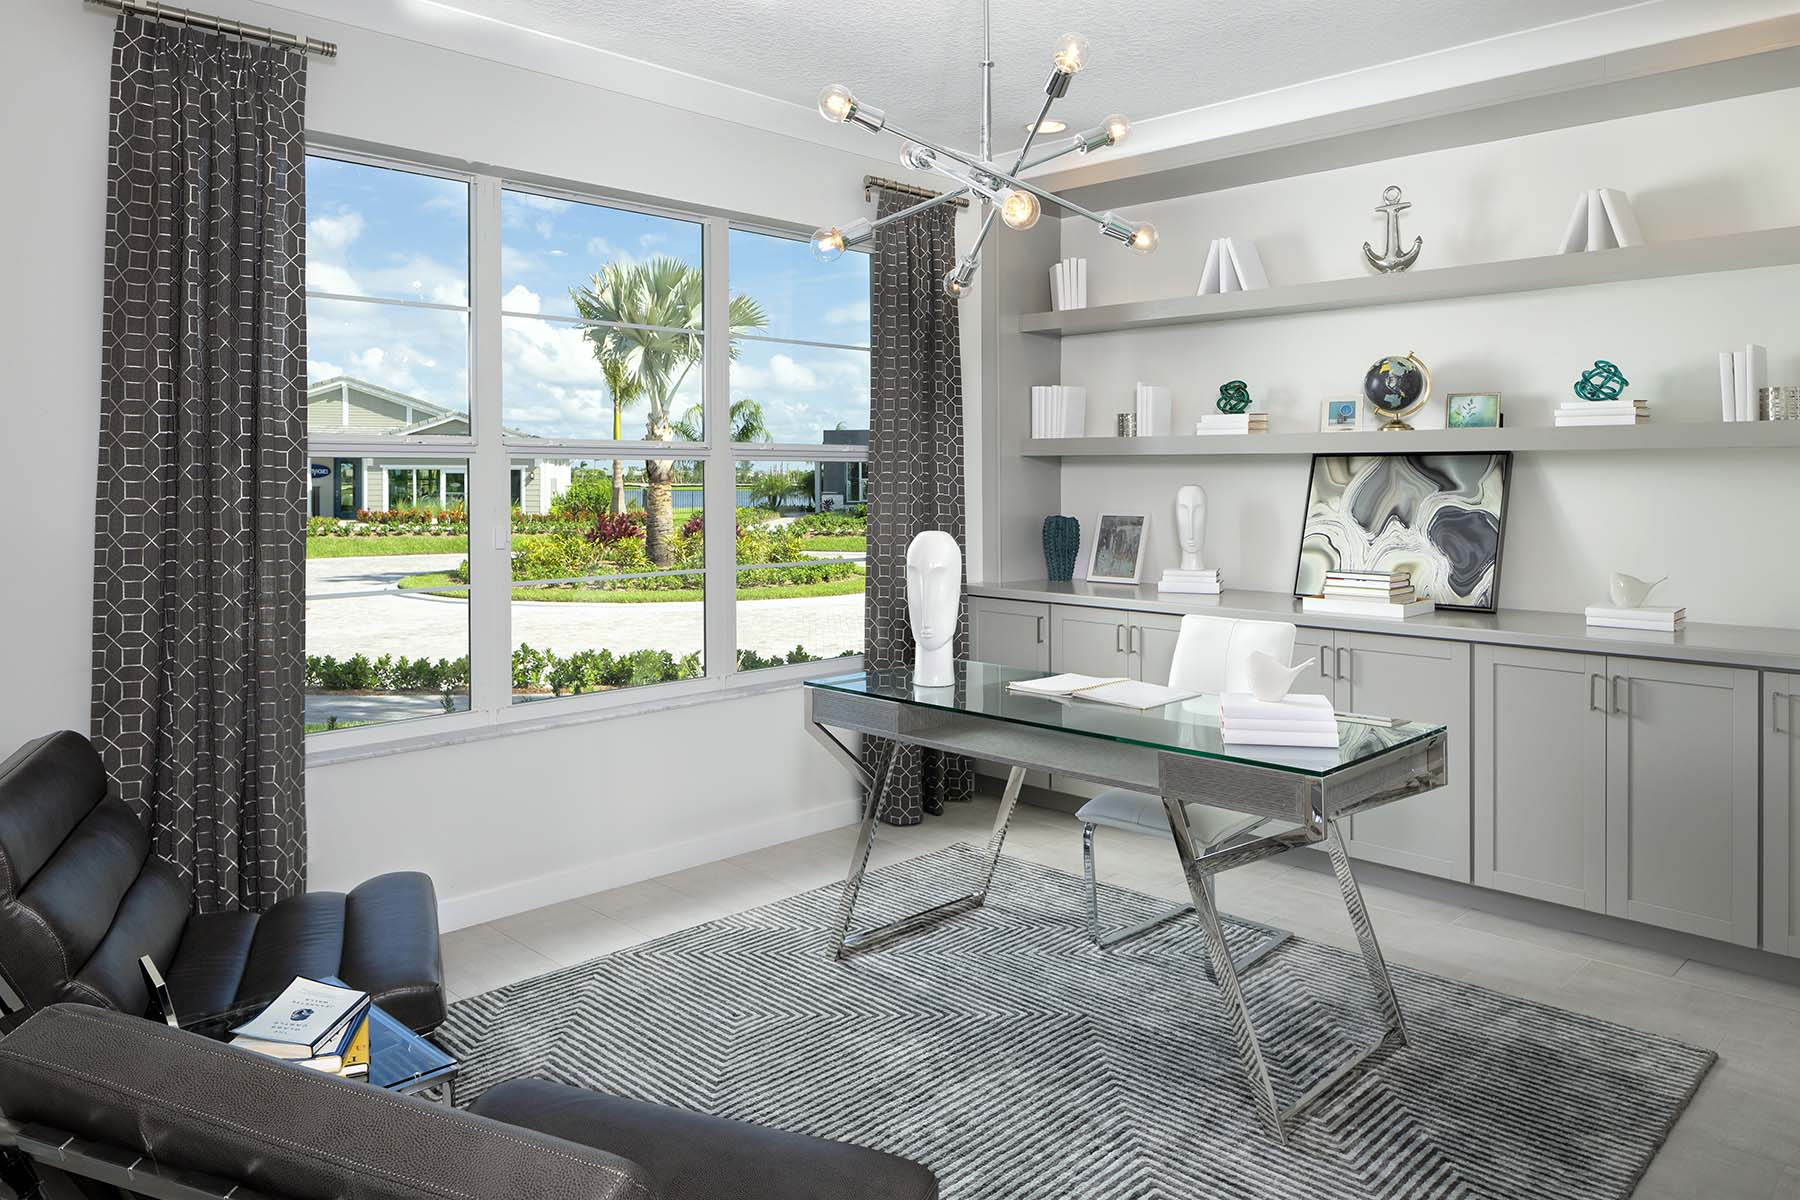 Rowan Plan Study Room at Tradition - Manderlie in Port St. Lucie Florida by Mattamy Homes